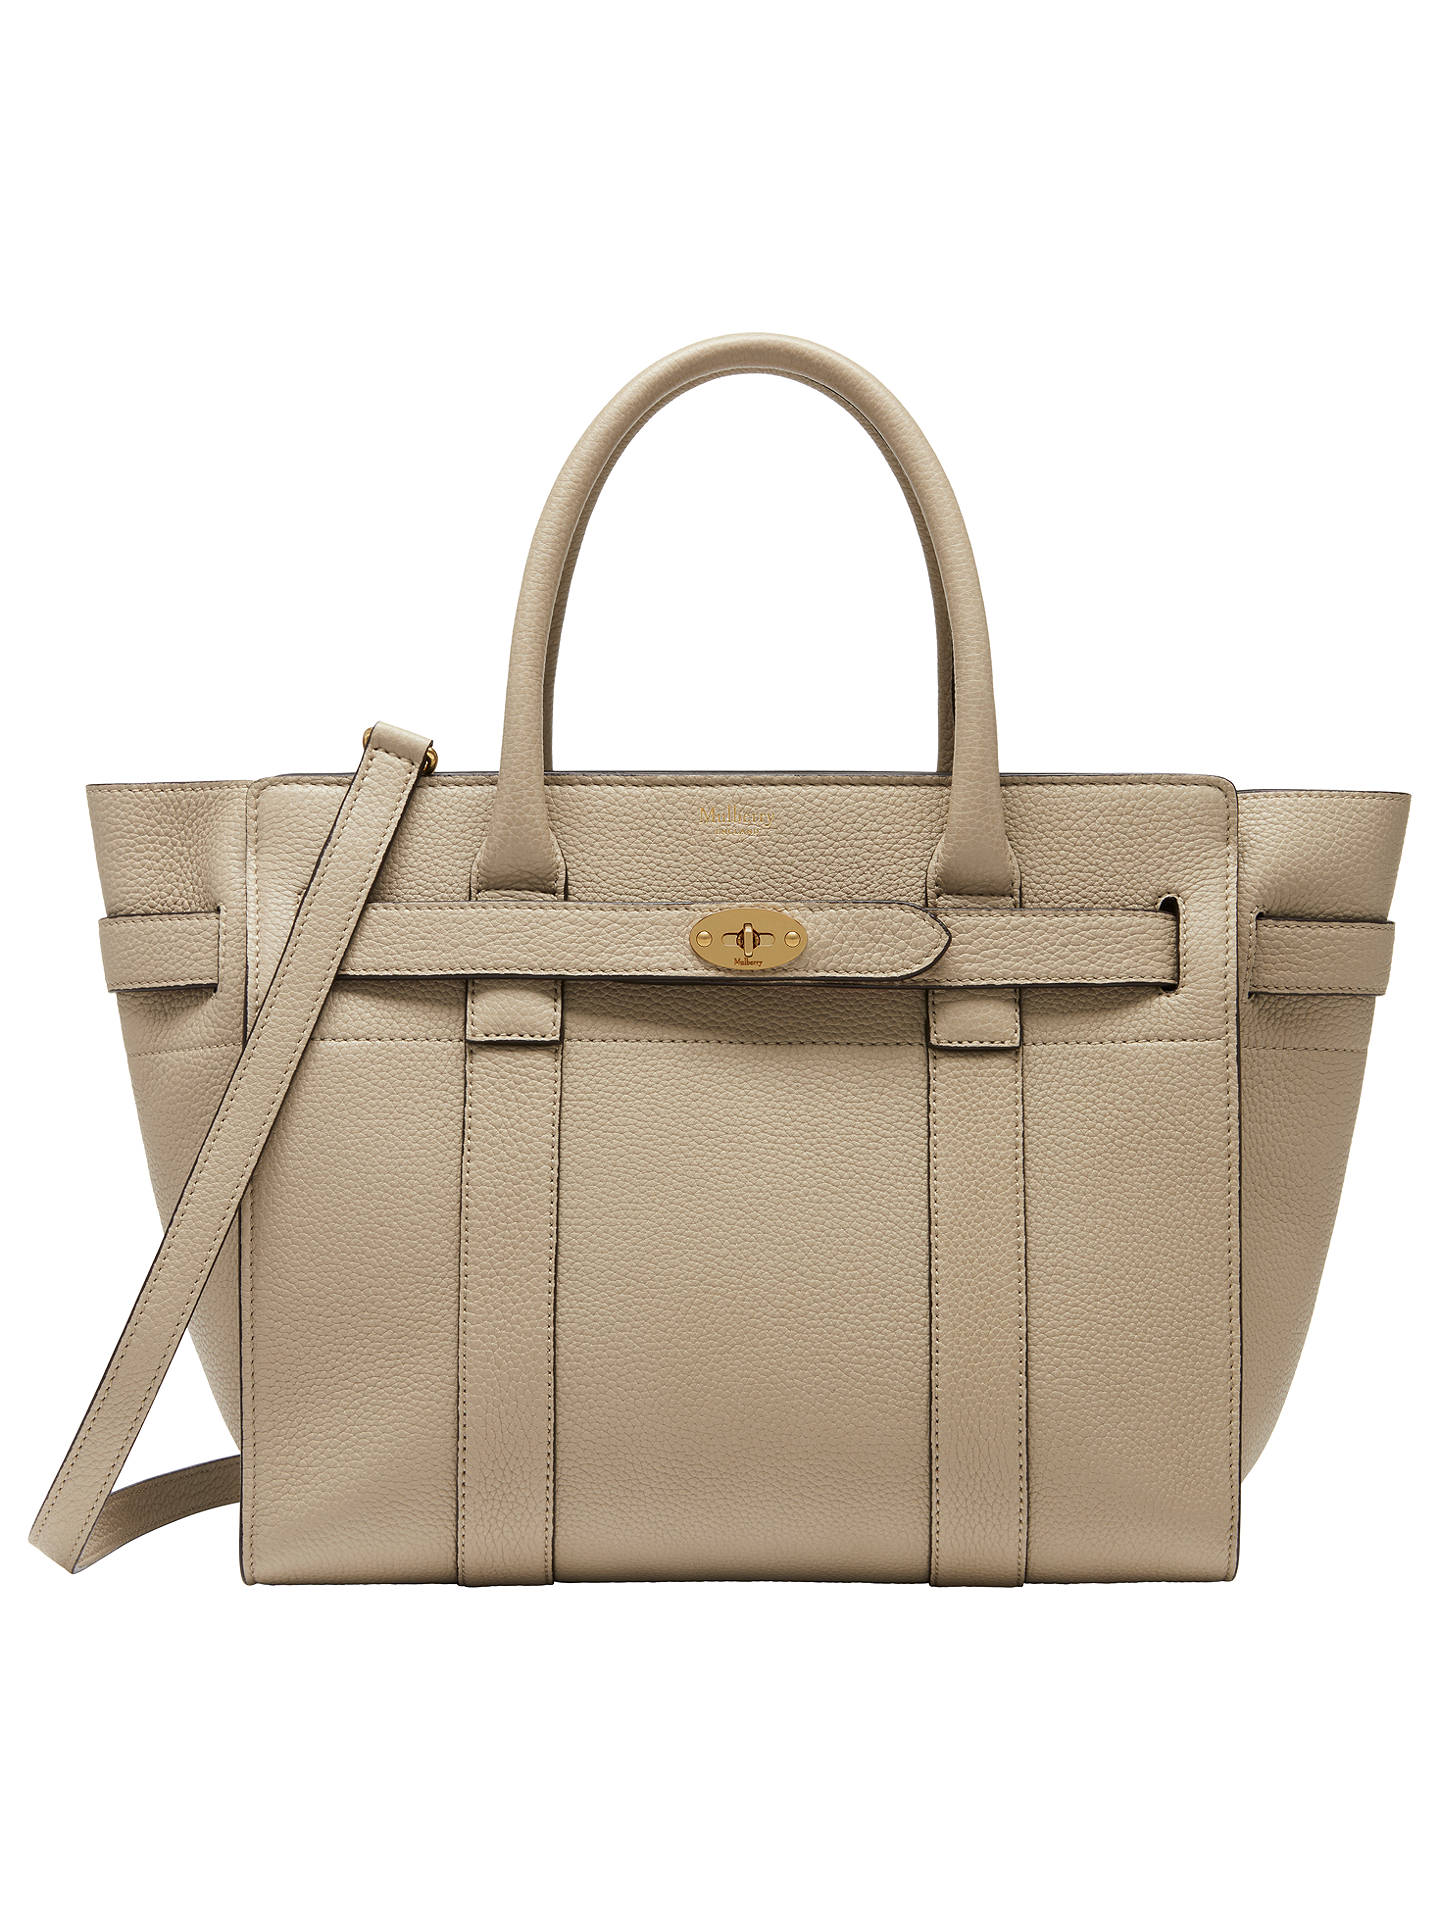 627ae8c36ab BuyMulberry Bayswater Small Classic Grain Leather Zipped Bag, Dune Online  at johnlewis.com ...